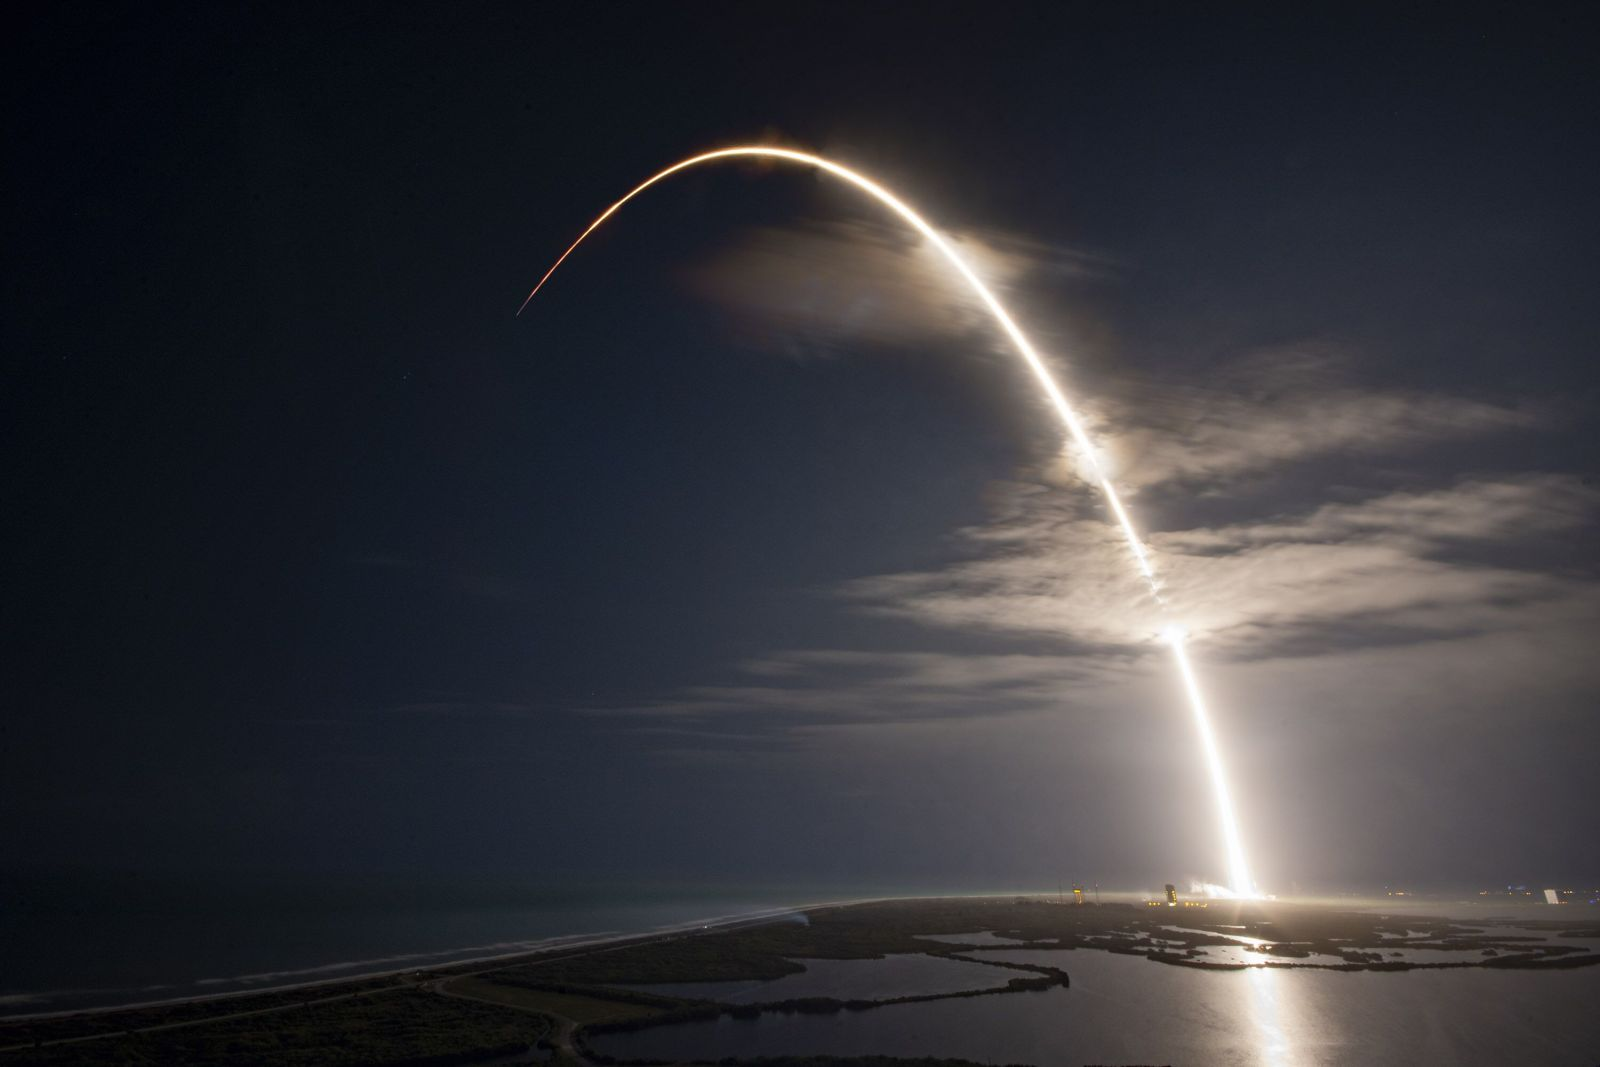 Streak shot of the Falcon 9 rocket on its way to orbit. Photo Credit: SpaceX